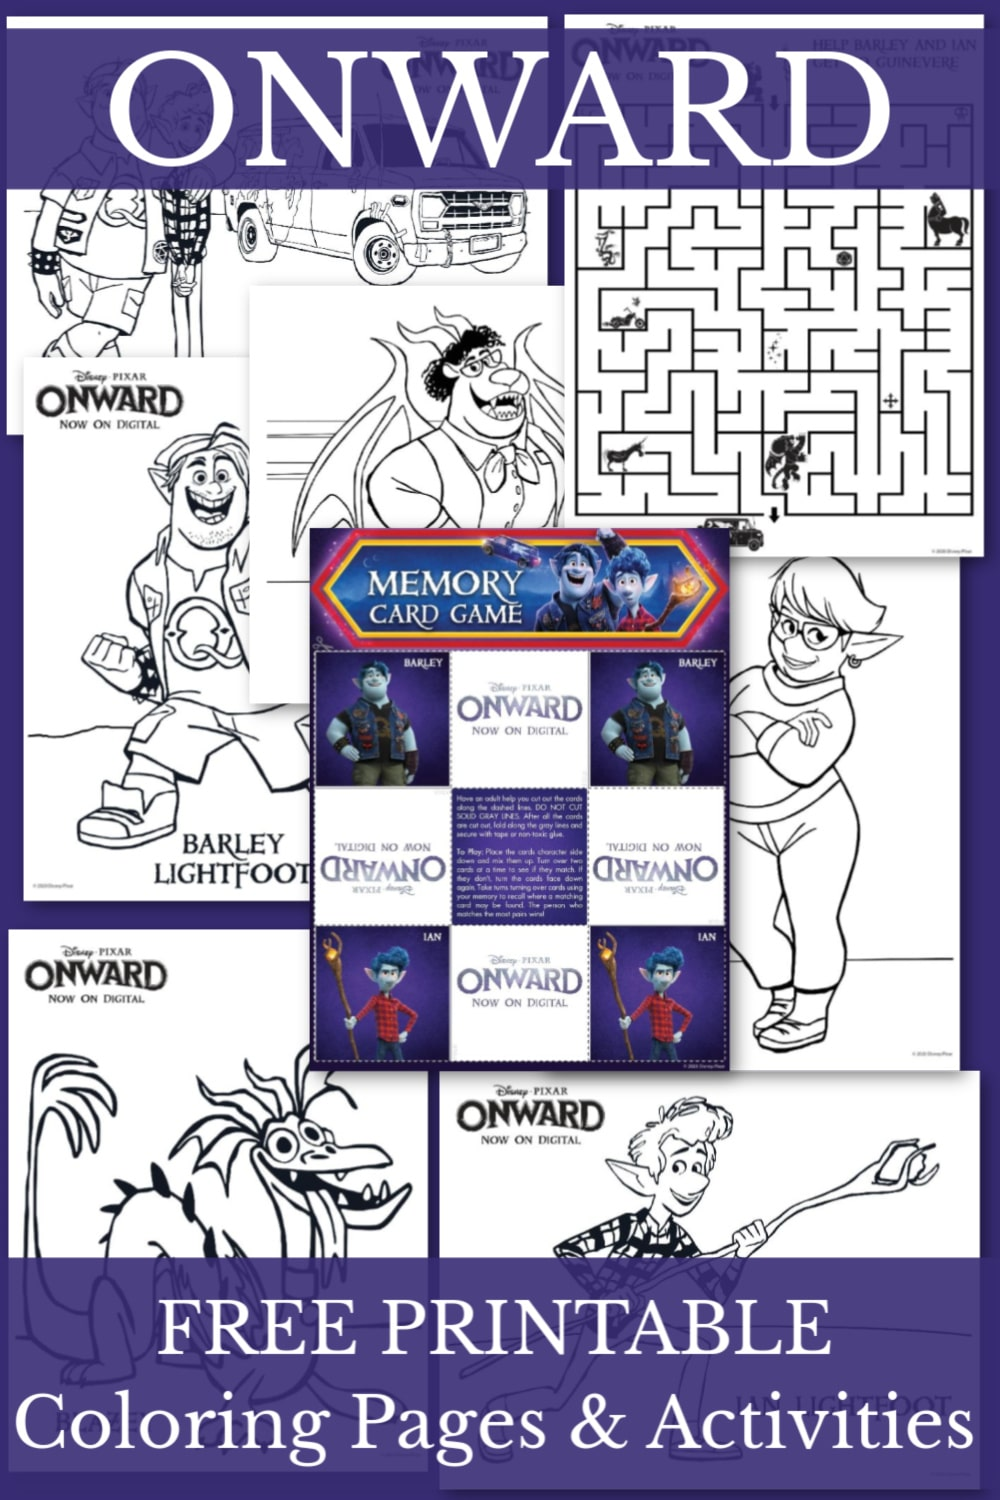 Your child will love these free printable ONWARD Coloring and Activity Pages. There's six printable coloring pages featuring key characters from the movie. #onward #printable #kidsactivities #coloringpage via @wondermomwannab